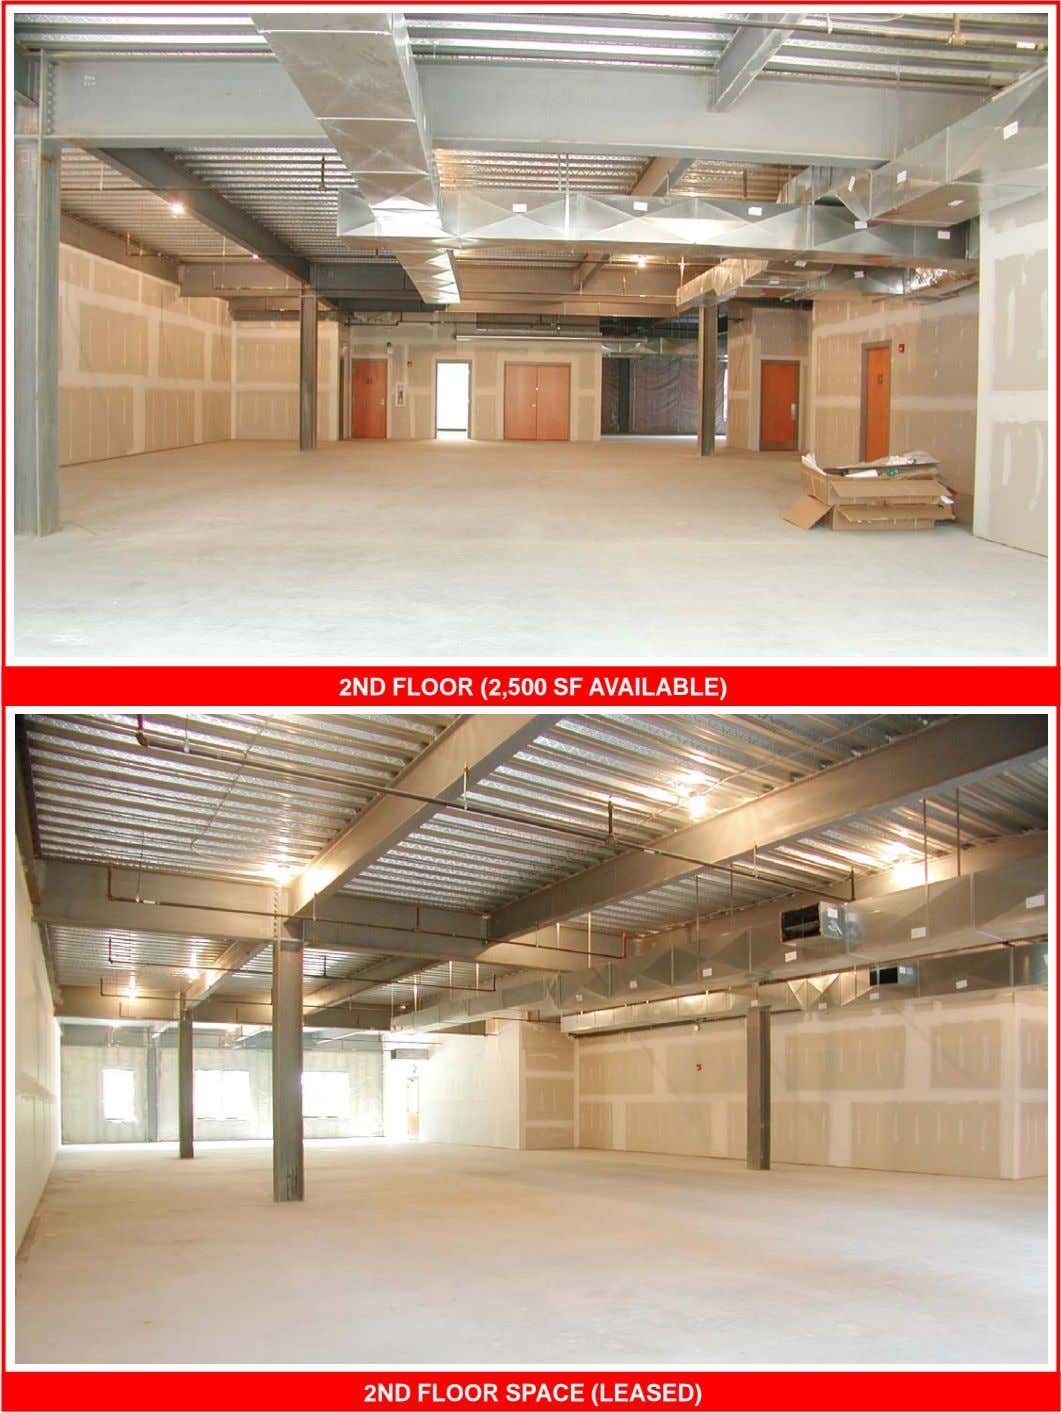 2ND FLOOR (2,500 SF AVAILABLE) 2ND FLOOR SPACE (LEASED)